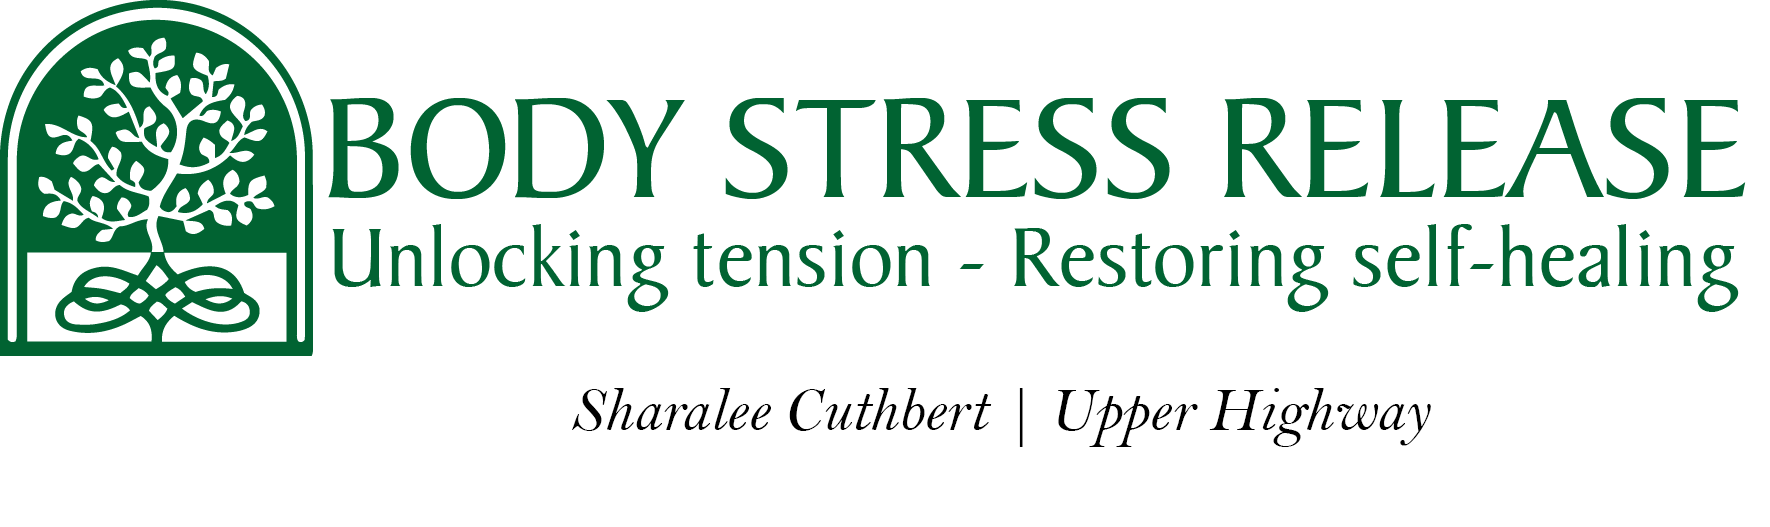 Upper Highway Body Stress Release